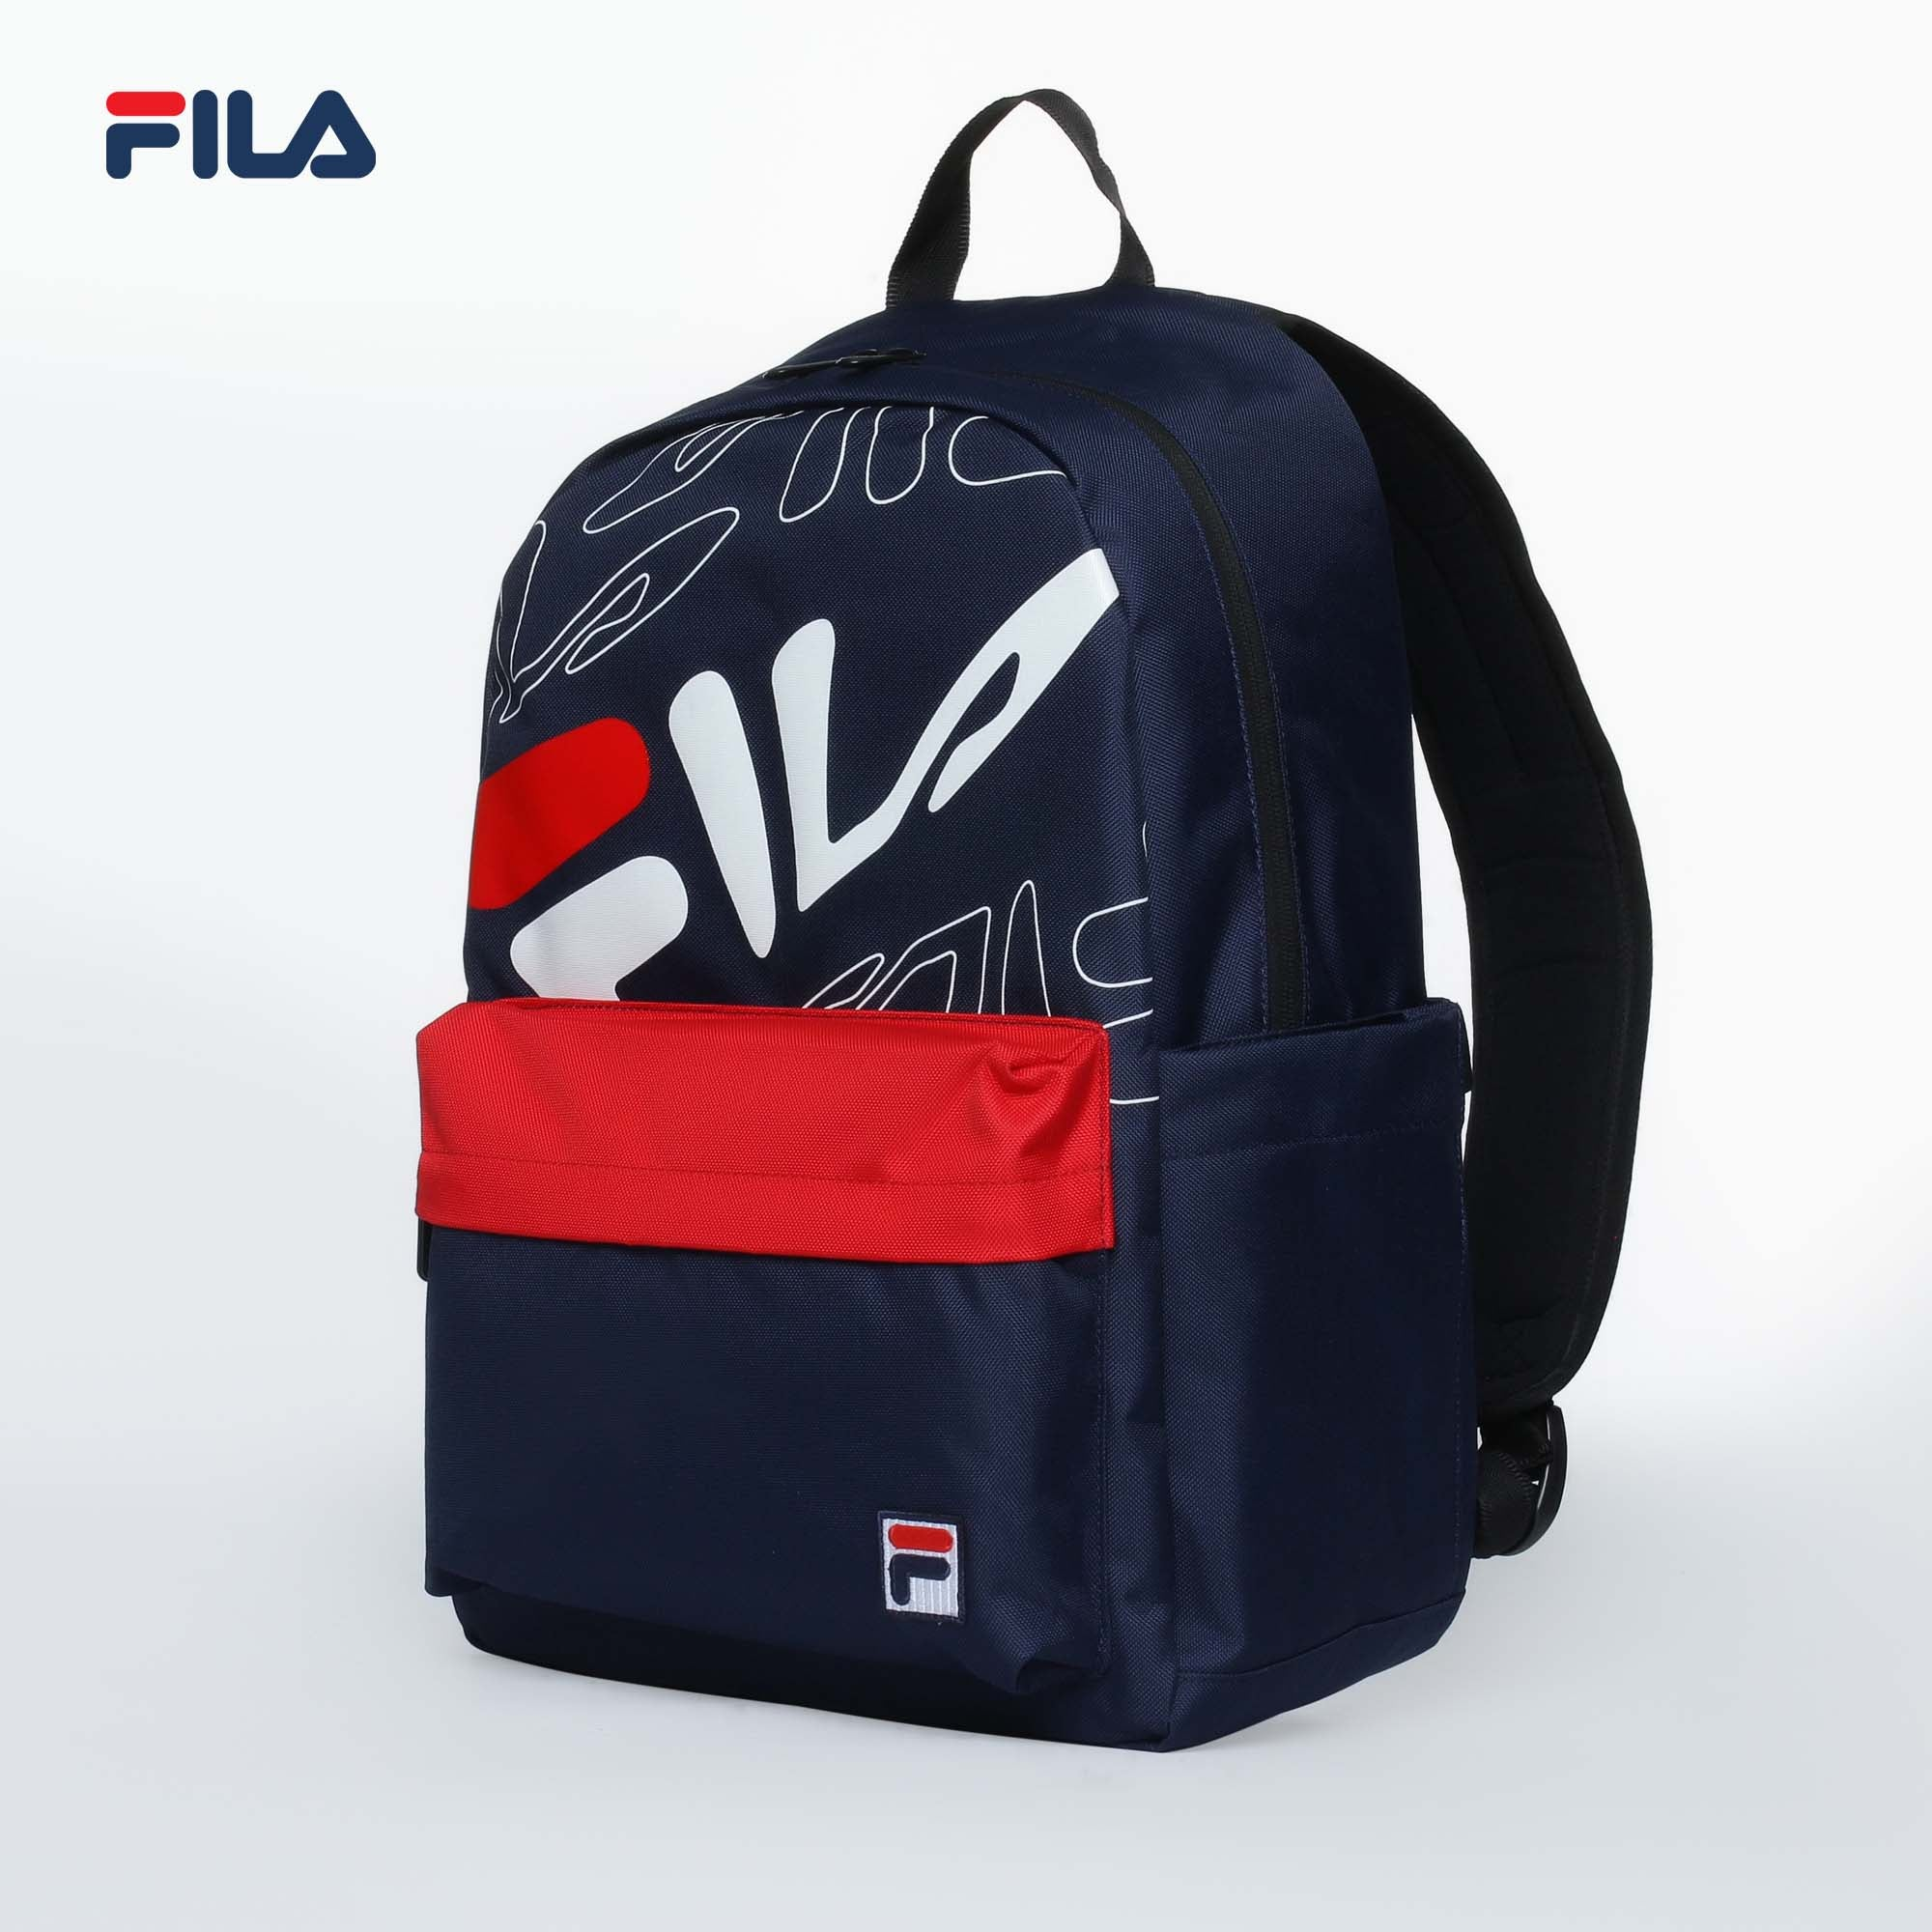 MARCO BACKPACK NAVY BLUE FREE SIZE